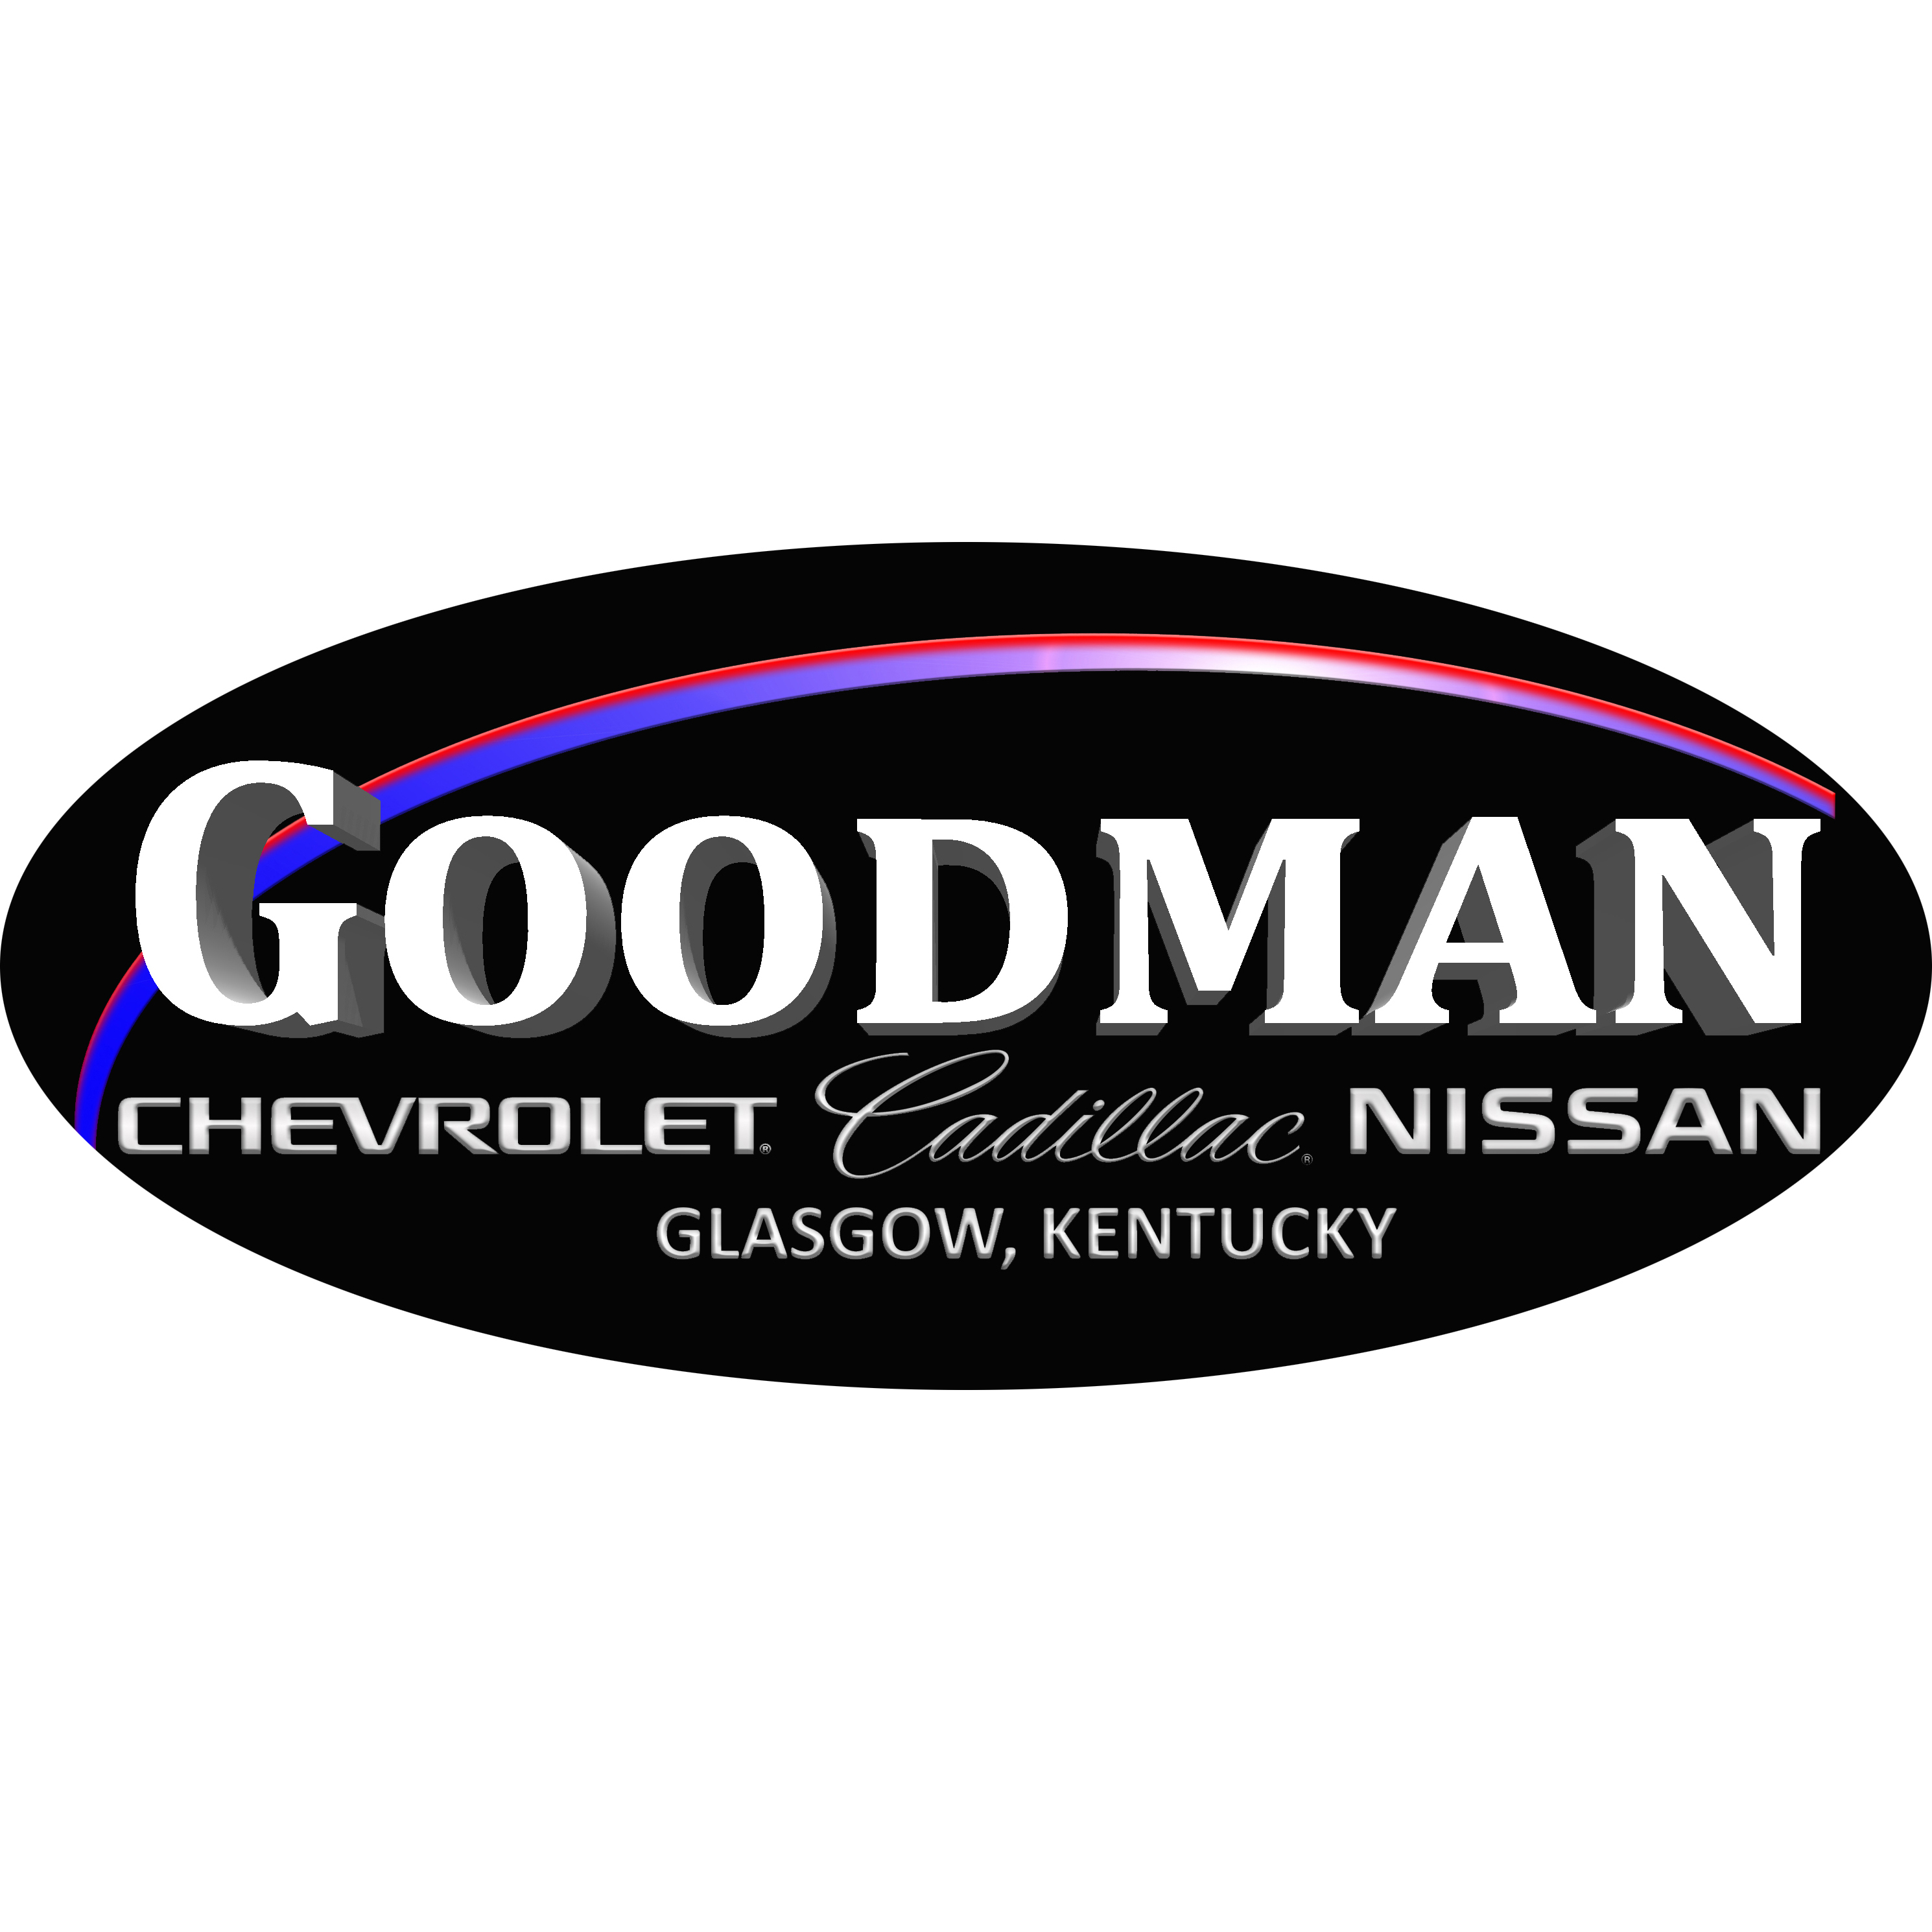 Goodman Chevrolet Cadillac Nissan Inc In Glasgow Ky